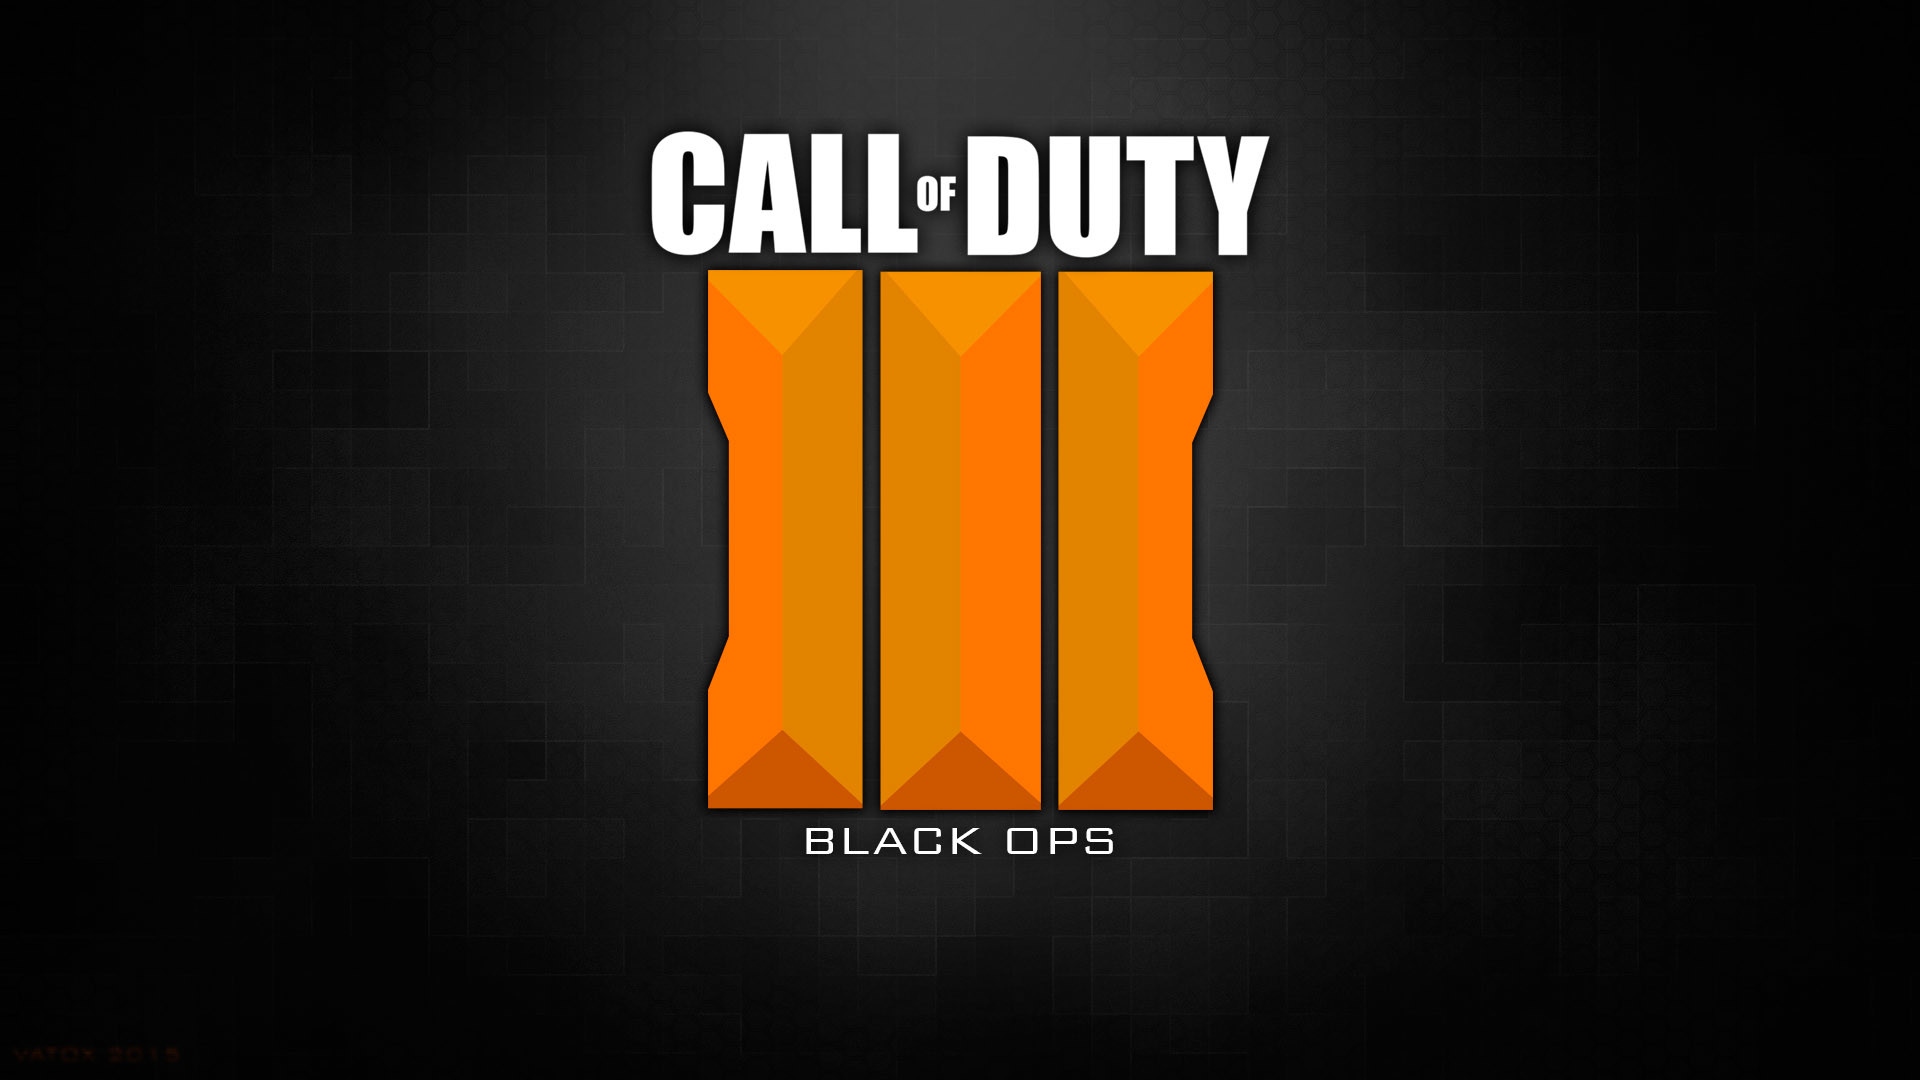 Call of Duty Black Ops 3 mark